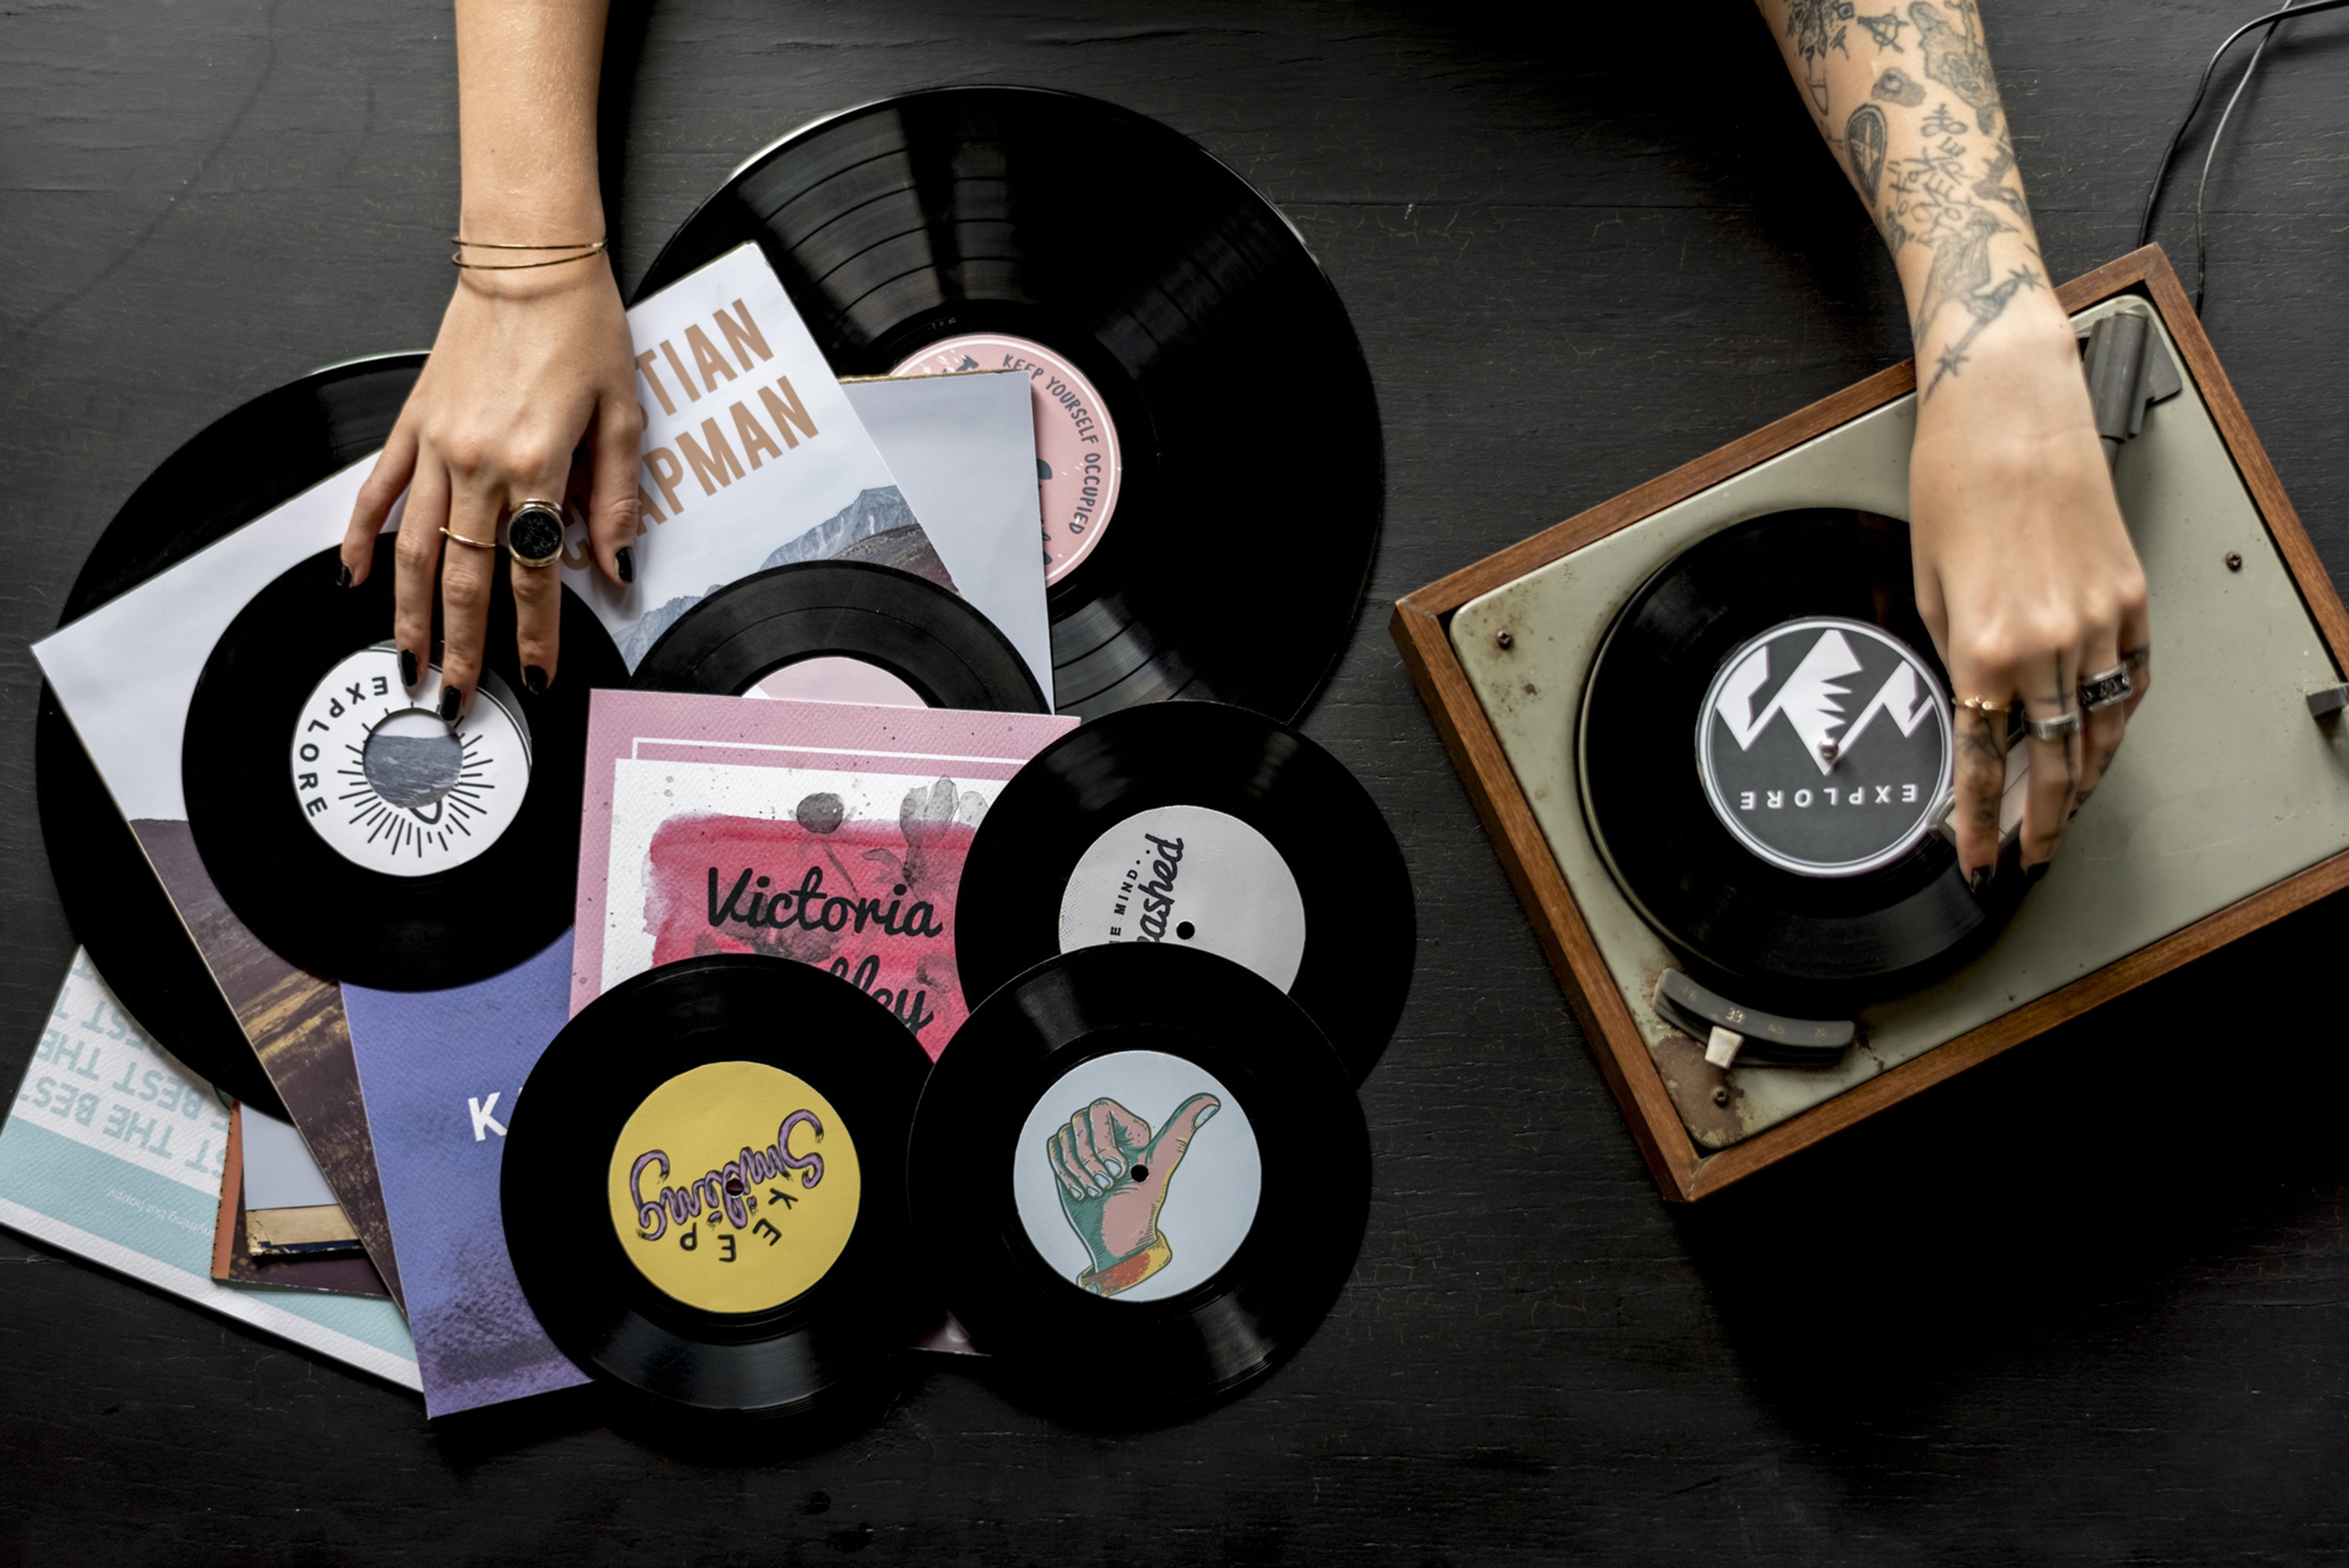 ODES_Sinais_Millennials vs Nostalgia_Tattoo Woman with Music Vinyl Record Disc with Player